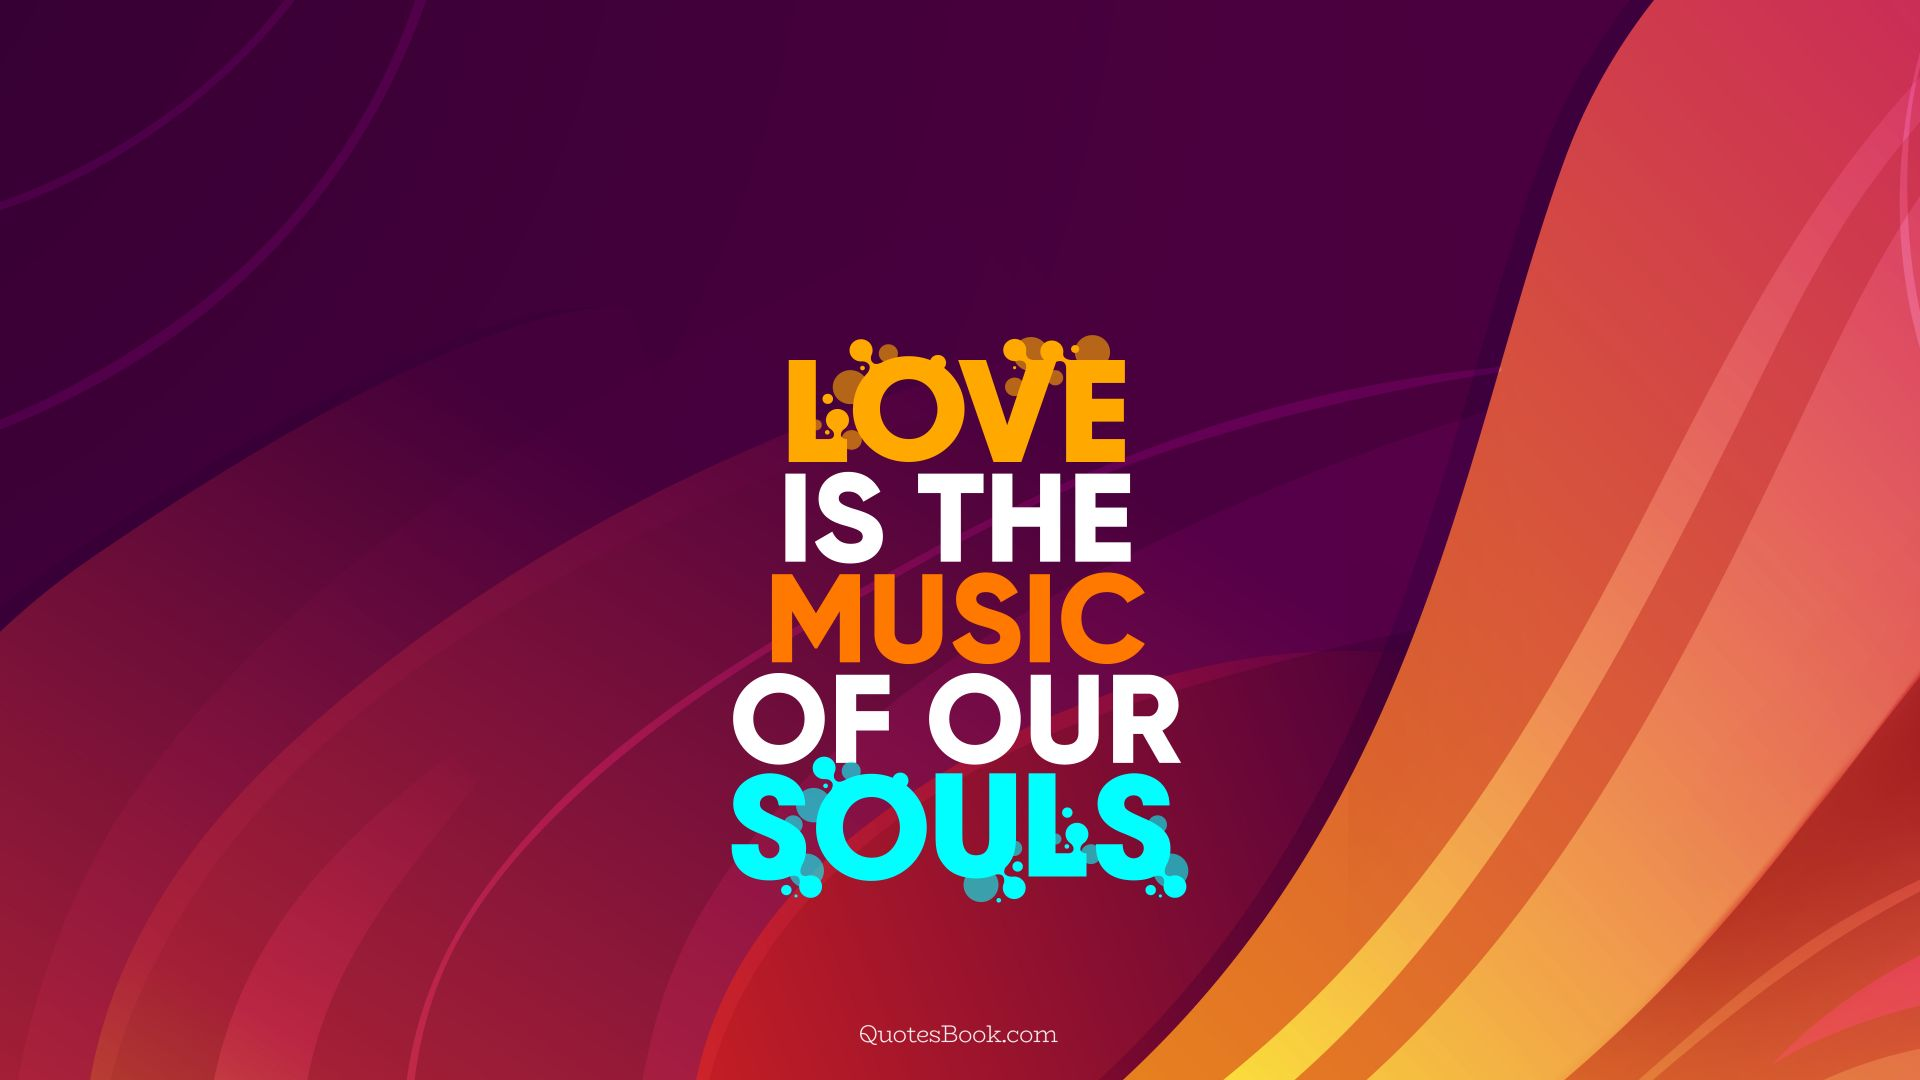 Love is the music of our souls. - Quote by QuotesBook